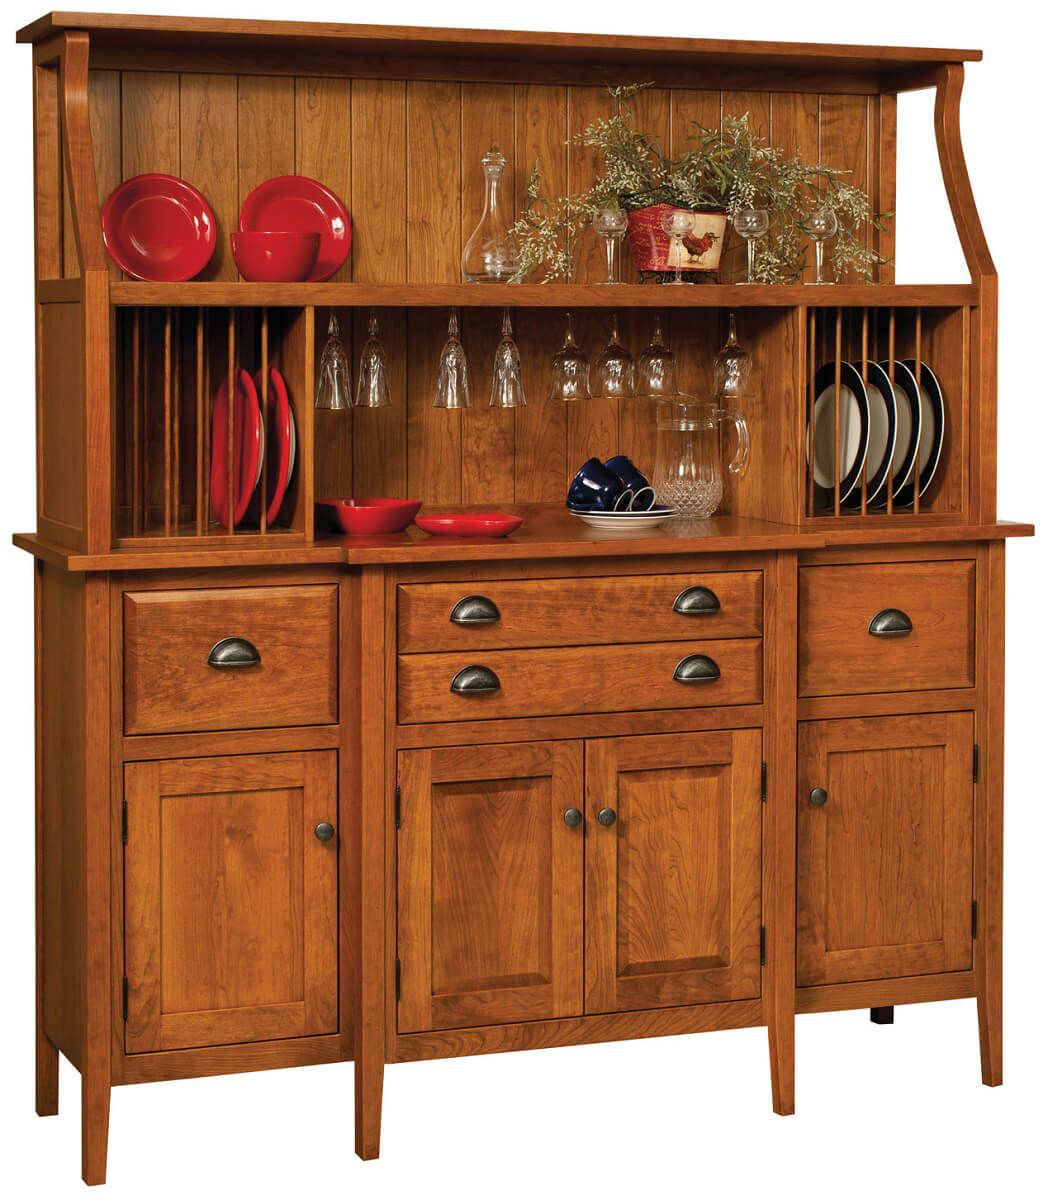 Brynner China Buffet in Cherry